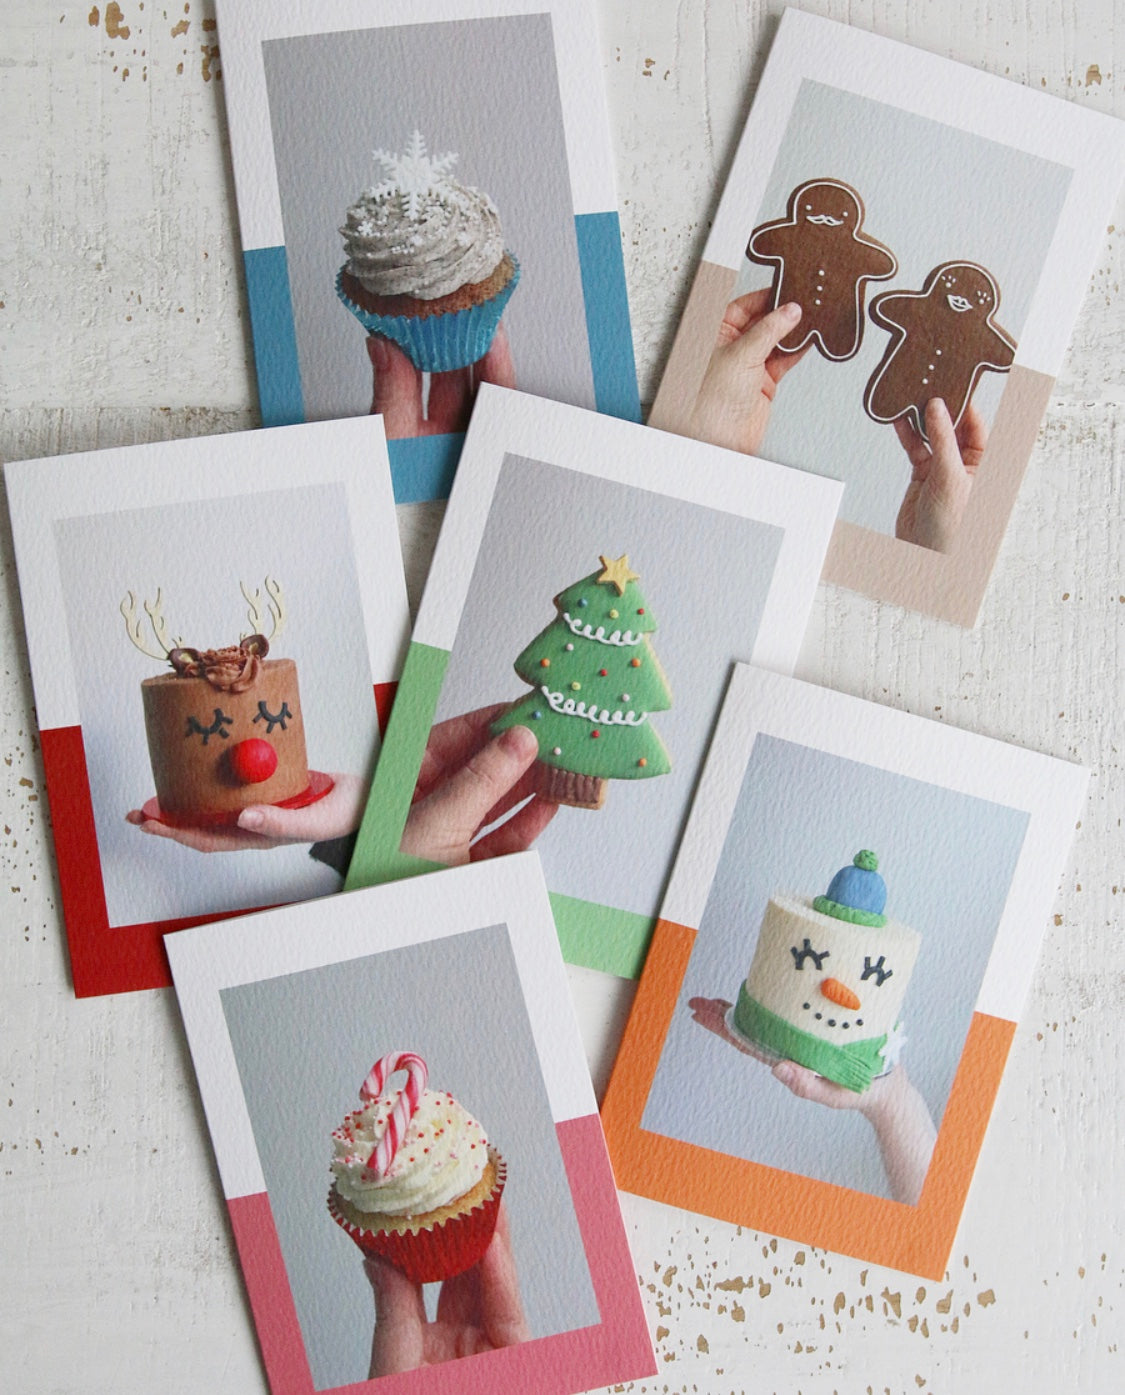 Selection of Christmas Cards with Photos of Cakes, Cupcakes and Biscuits